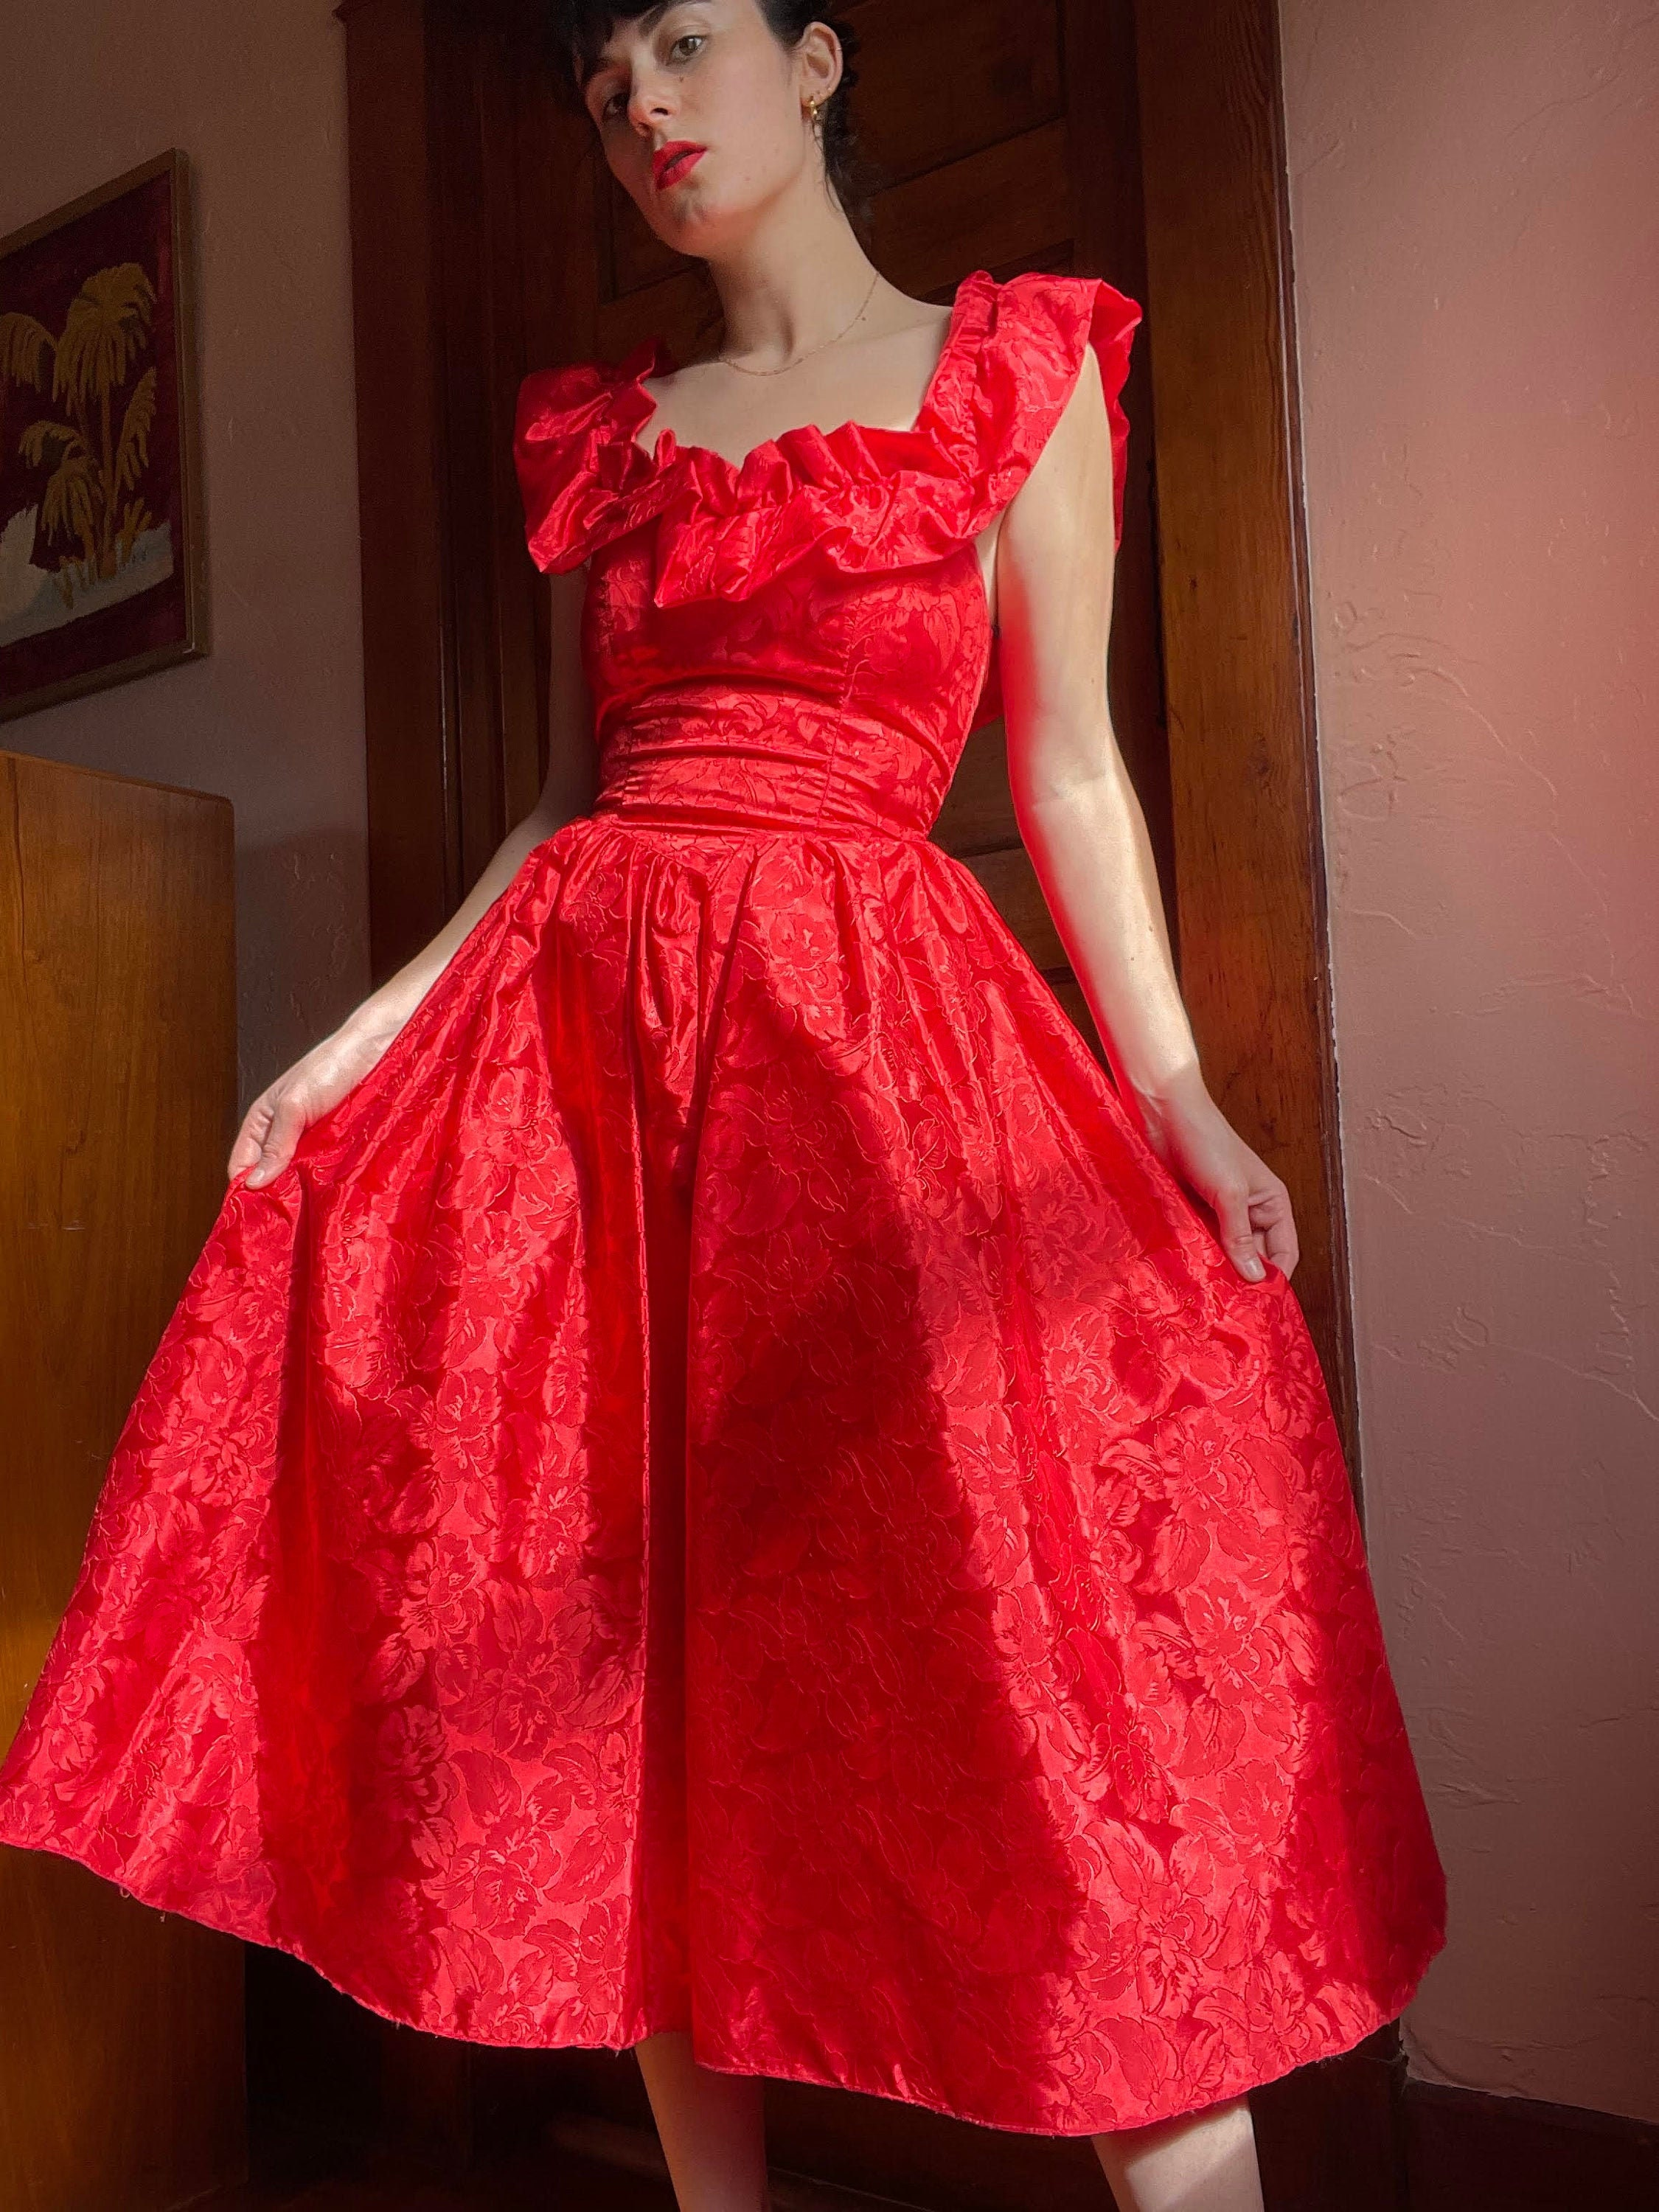 80s Dresses | Casual to Party Dresses 1980S Lipstick Red Party Dress With Yoked Waist, Full Skirt,  Ruffle Neckline Size Small $0.00 AT vintagedancer.com